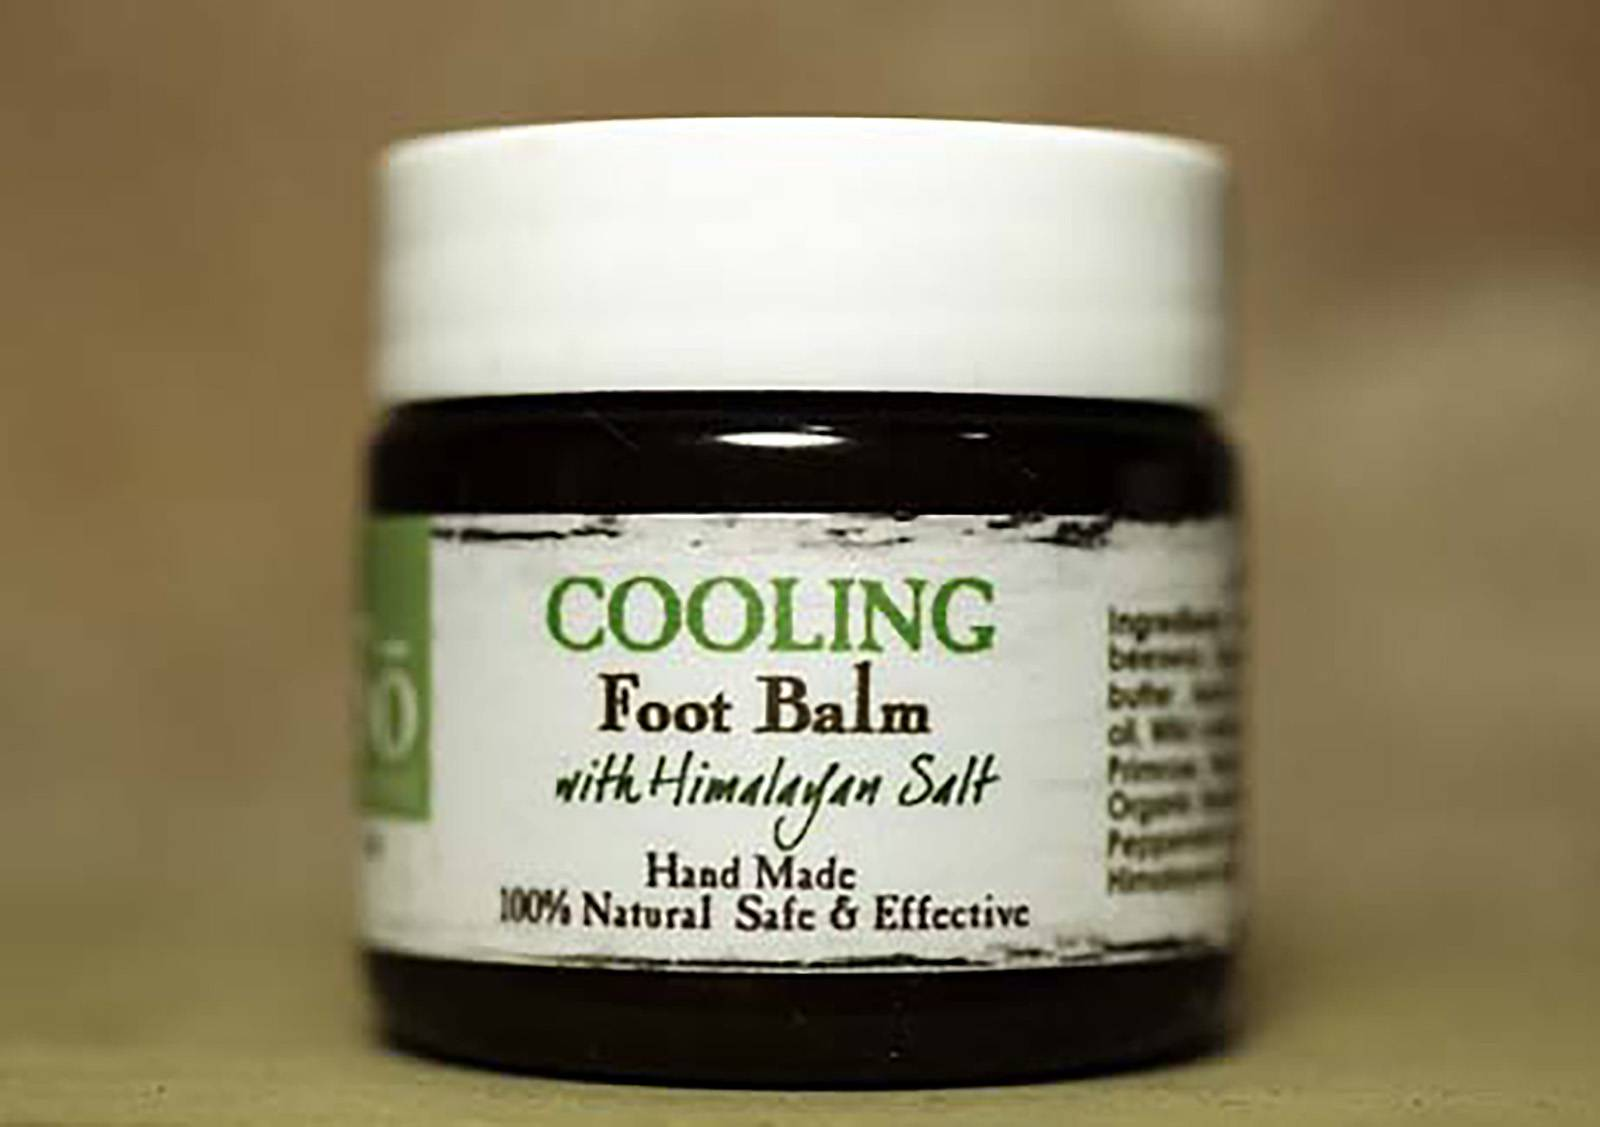 So Well Cooling Foot Balm - $18 - Nobody wants to have or see crusty, cracked, dry heels. This cooling foot balm will have your feet looking freshly pedicured. It also prevents your feet from sweating profusely and smelling bad in your new winter socks and boots.(Photo: Courtesy of Marina Samovsky Photography, www.natural-salt-lamps.com)